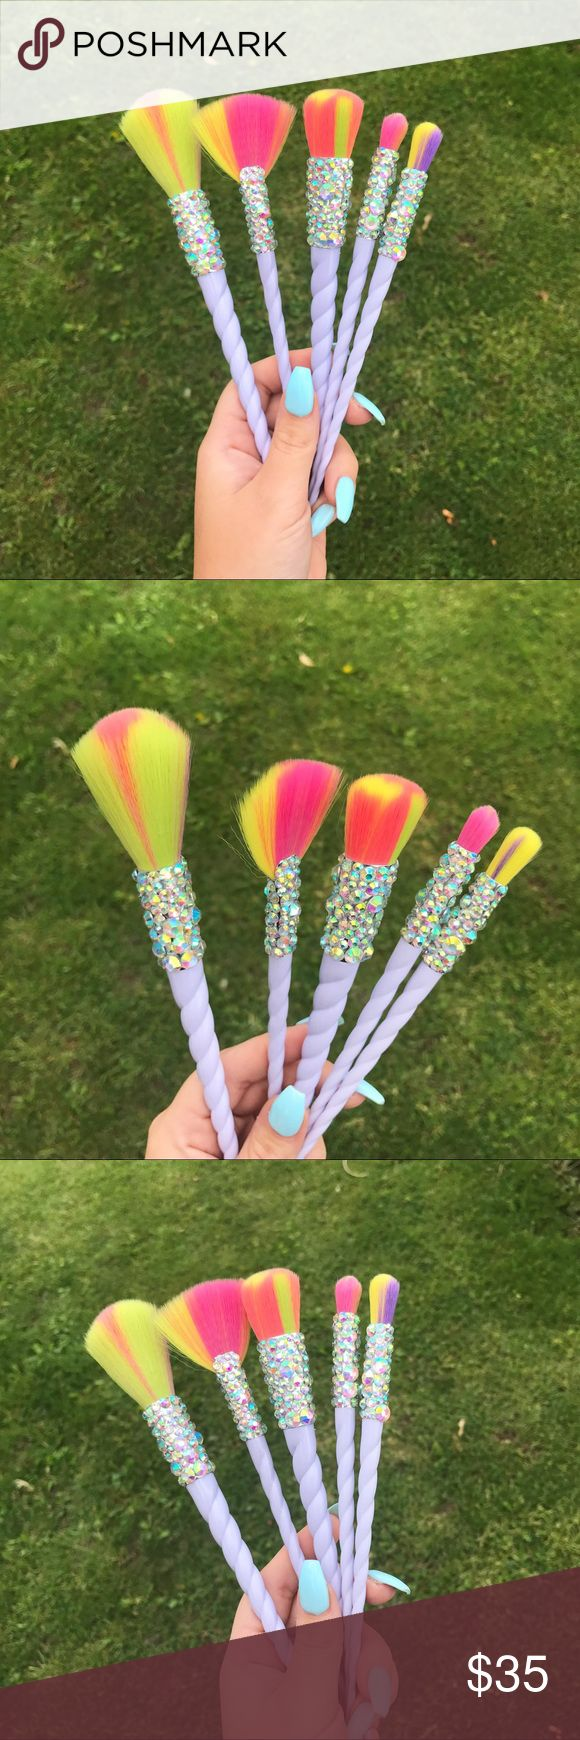 9 Pc Crystallized Unicorn Rainbow Makeup Brush Set Set of 5 Vegan, Rainbow, Unicorn Makeup Brushes. Each brush is hand set with Swarovski Crystal elements - they are sealed on with industrial strength adhesive and will not tarnish or fall off. Super cute, one of a kind. Only one set available. Tags: Morphe, Ulta, Tarte, Sigma, Mac, Jeffree Star, Abh, Fan Brush, Makeup Geek Sephora Makeup Brushes & Tools